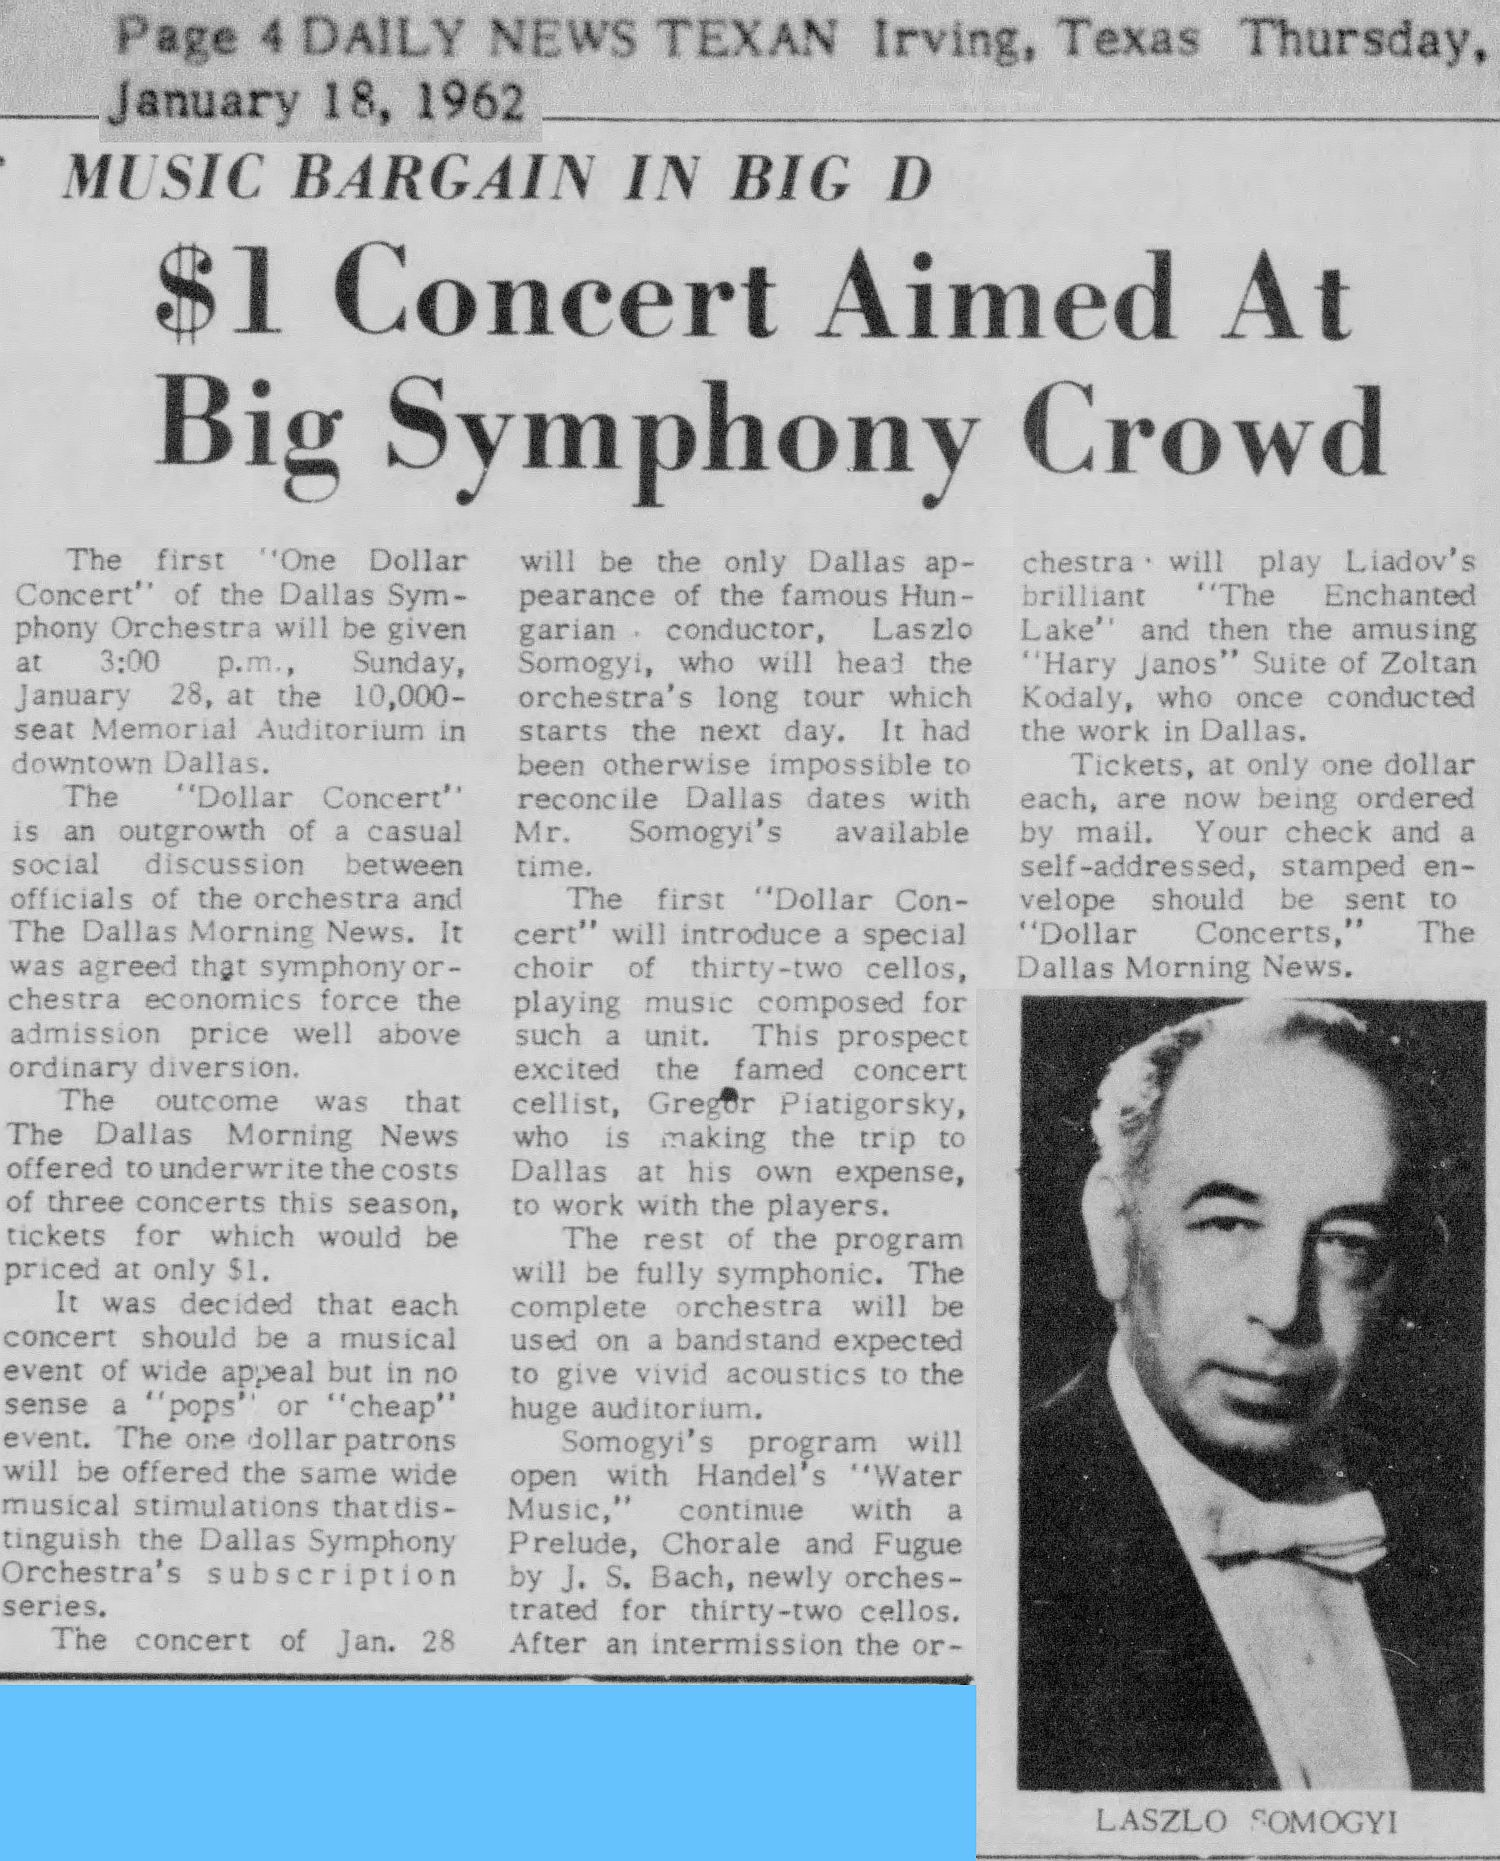 The Irving Daily News Texan Thu Jan 18 1962 page 4 65C2FC